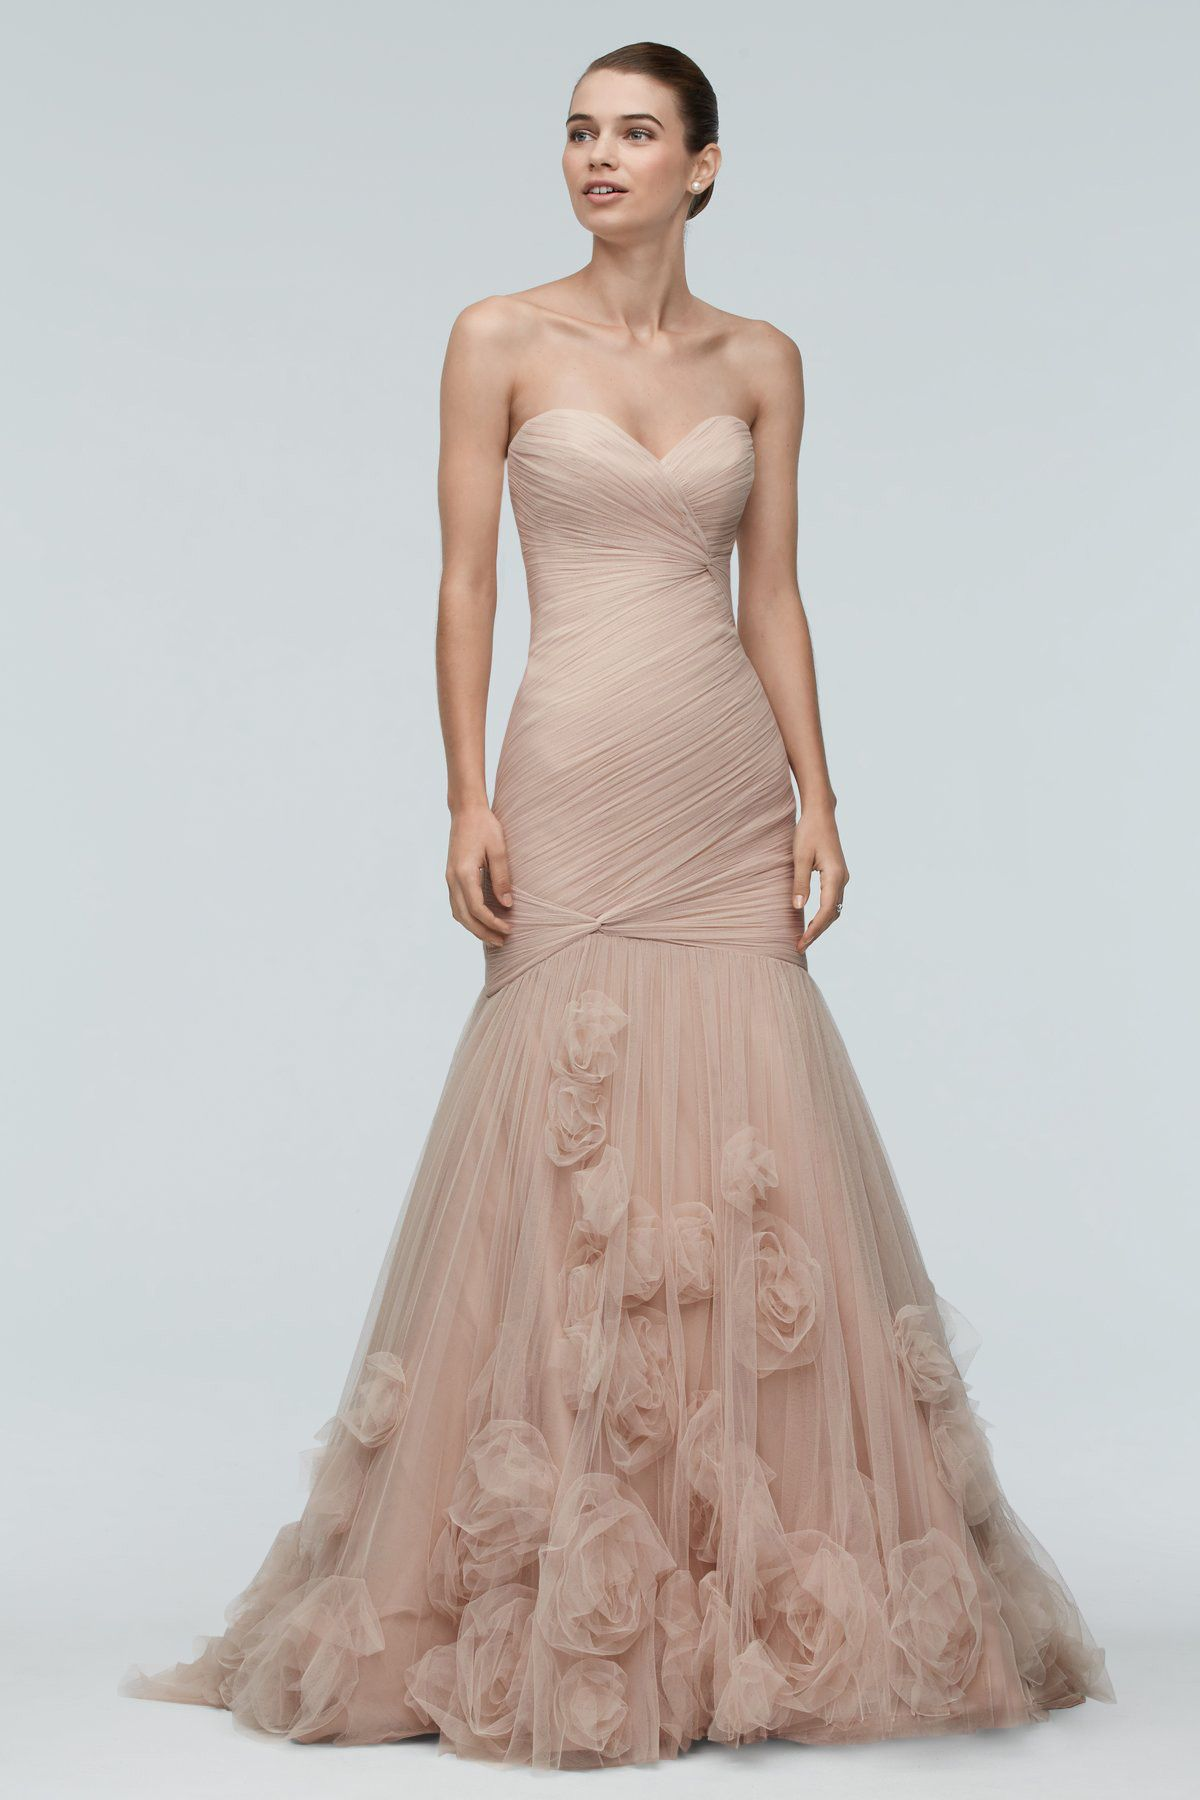 Watters Brides Starla Gown in Rose Gold with Rosettes